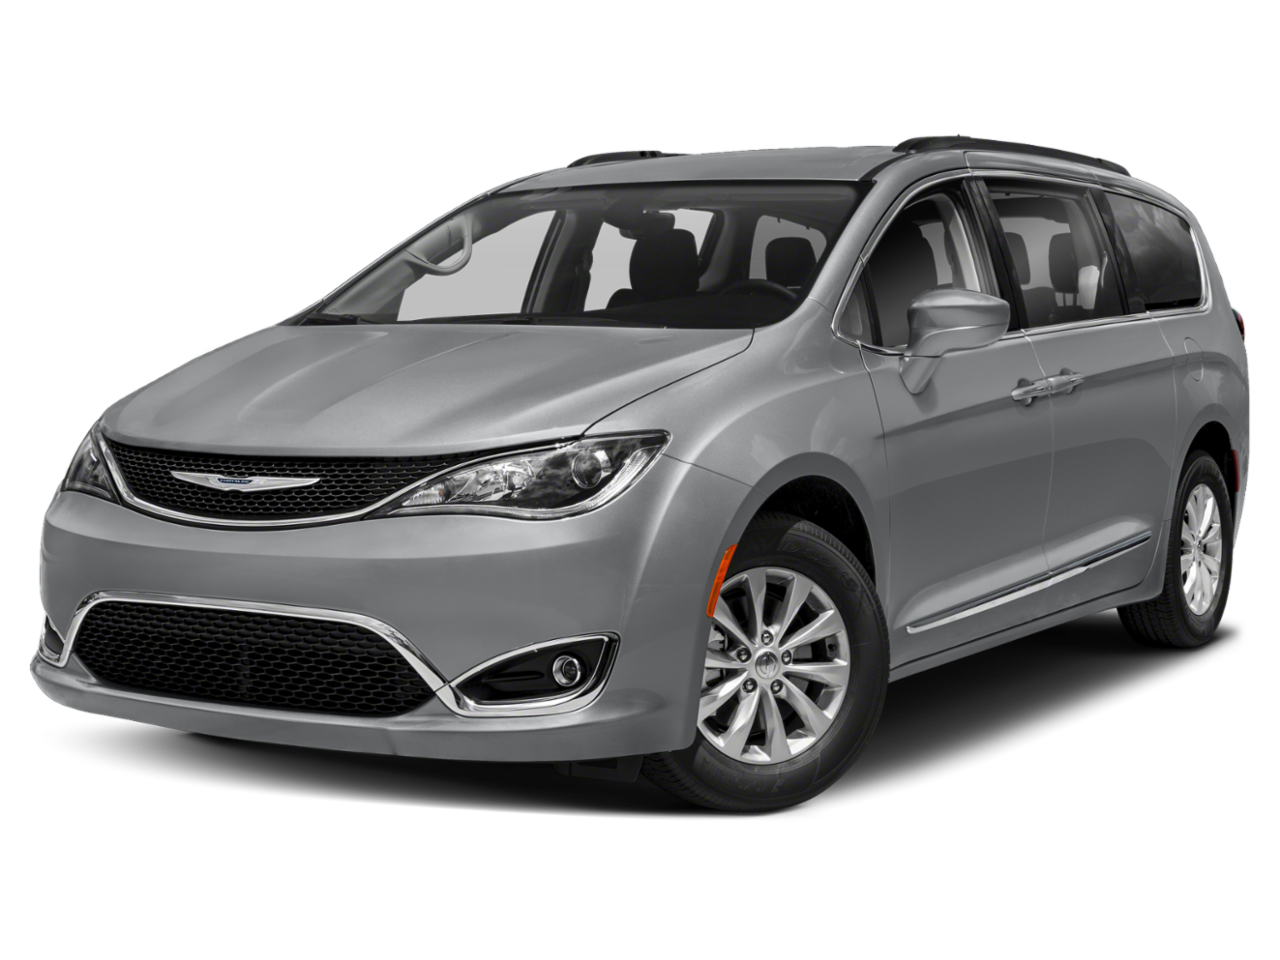 Buyer's Guide: 2020 Chrysler Pacifica